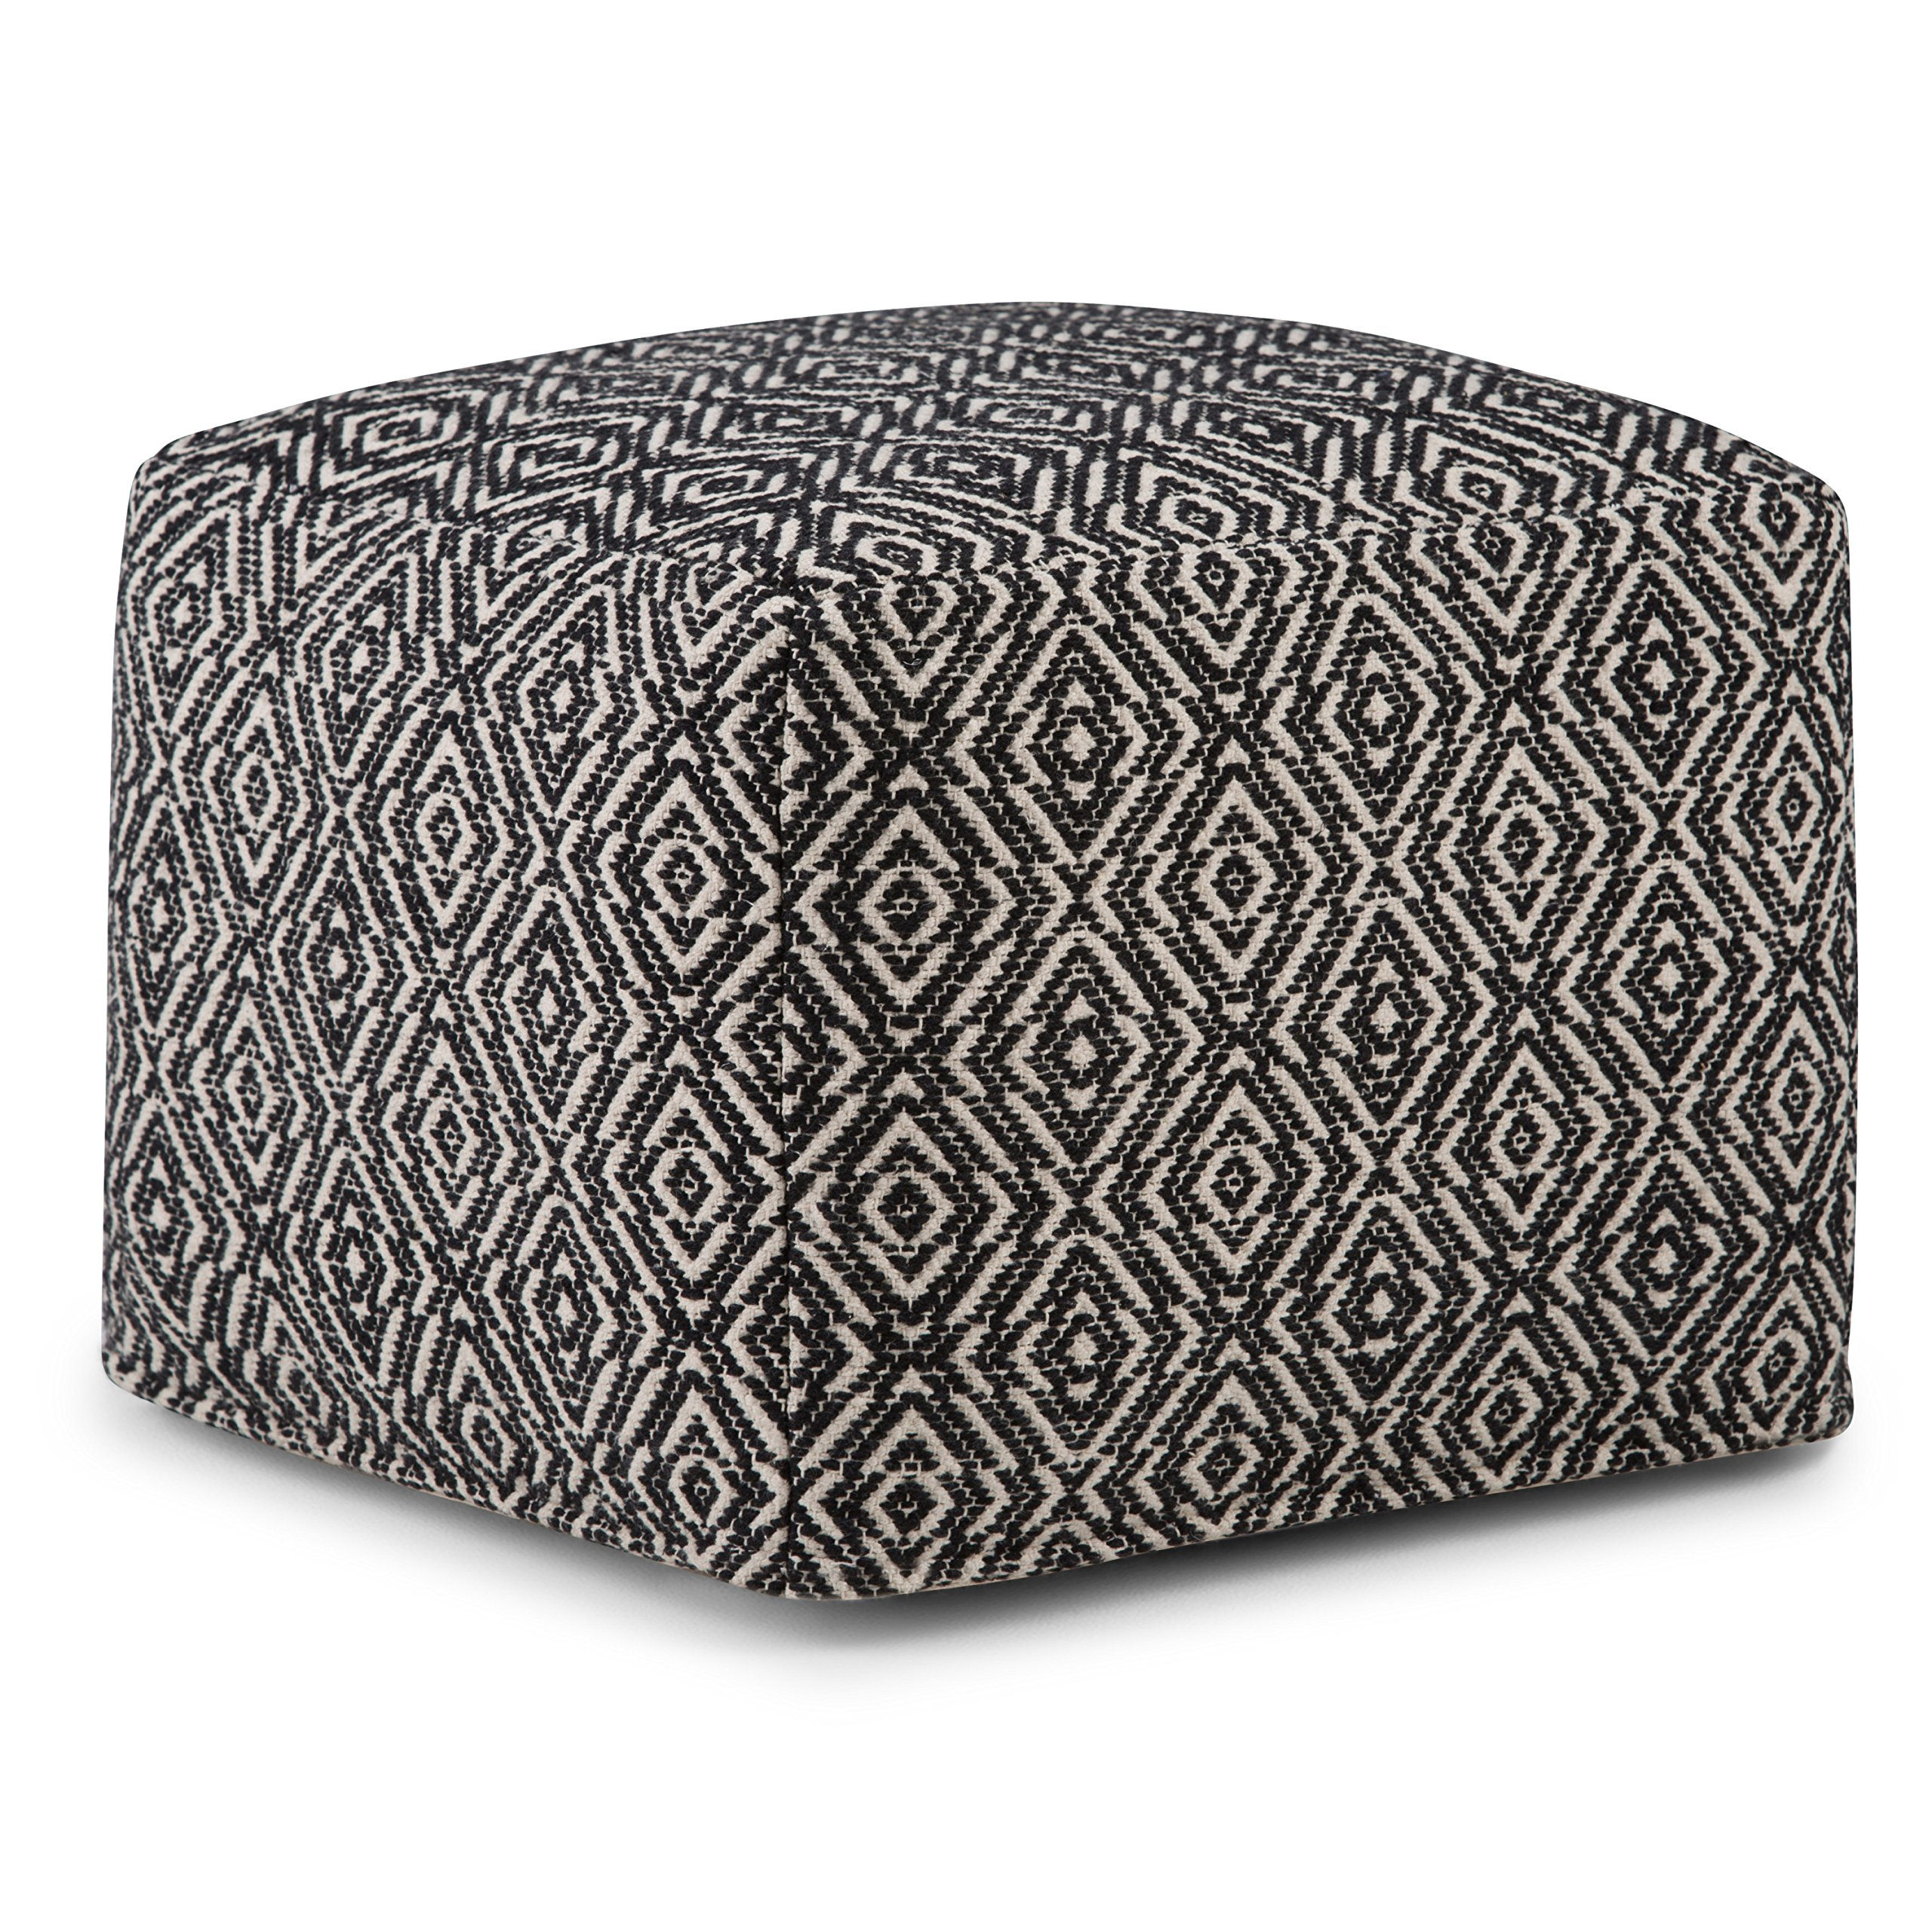 Simpli Home AXCPF-03 Graham Transitional Square Pouf in Patterned Black, Natural Cotton by Simpli Home